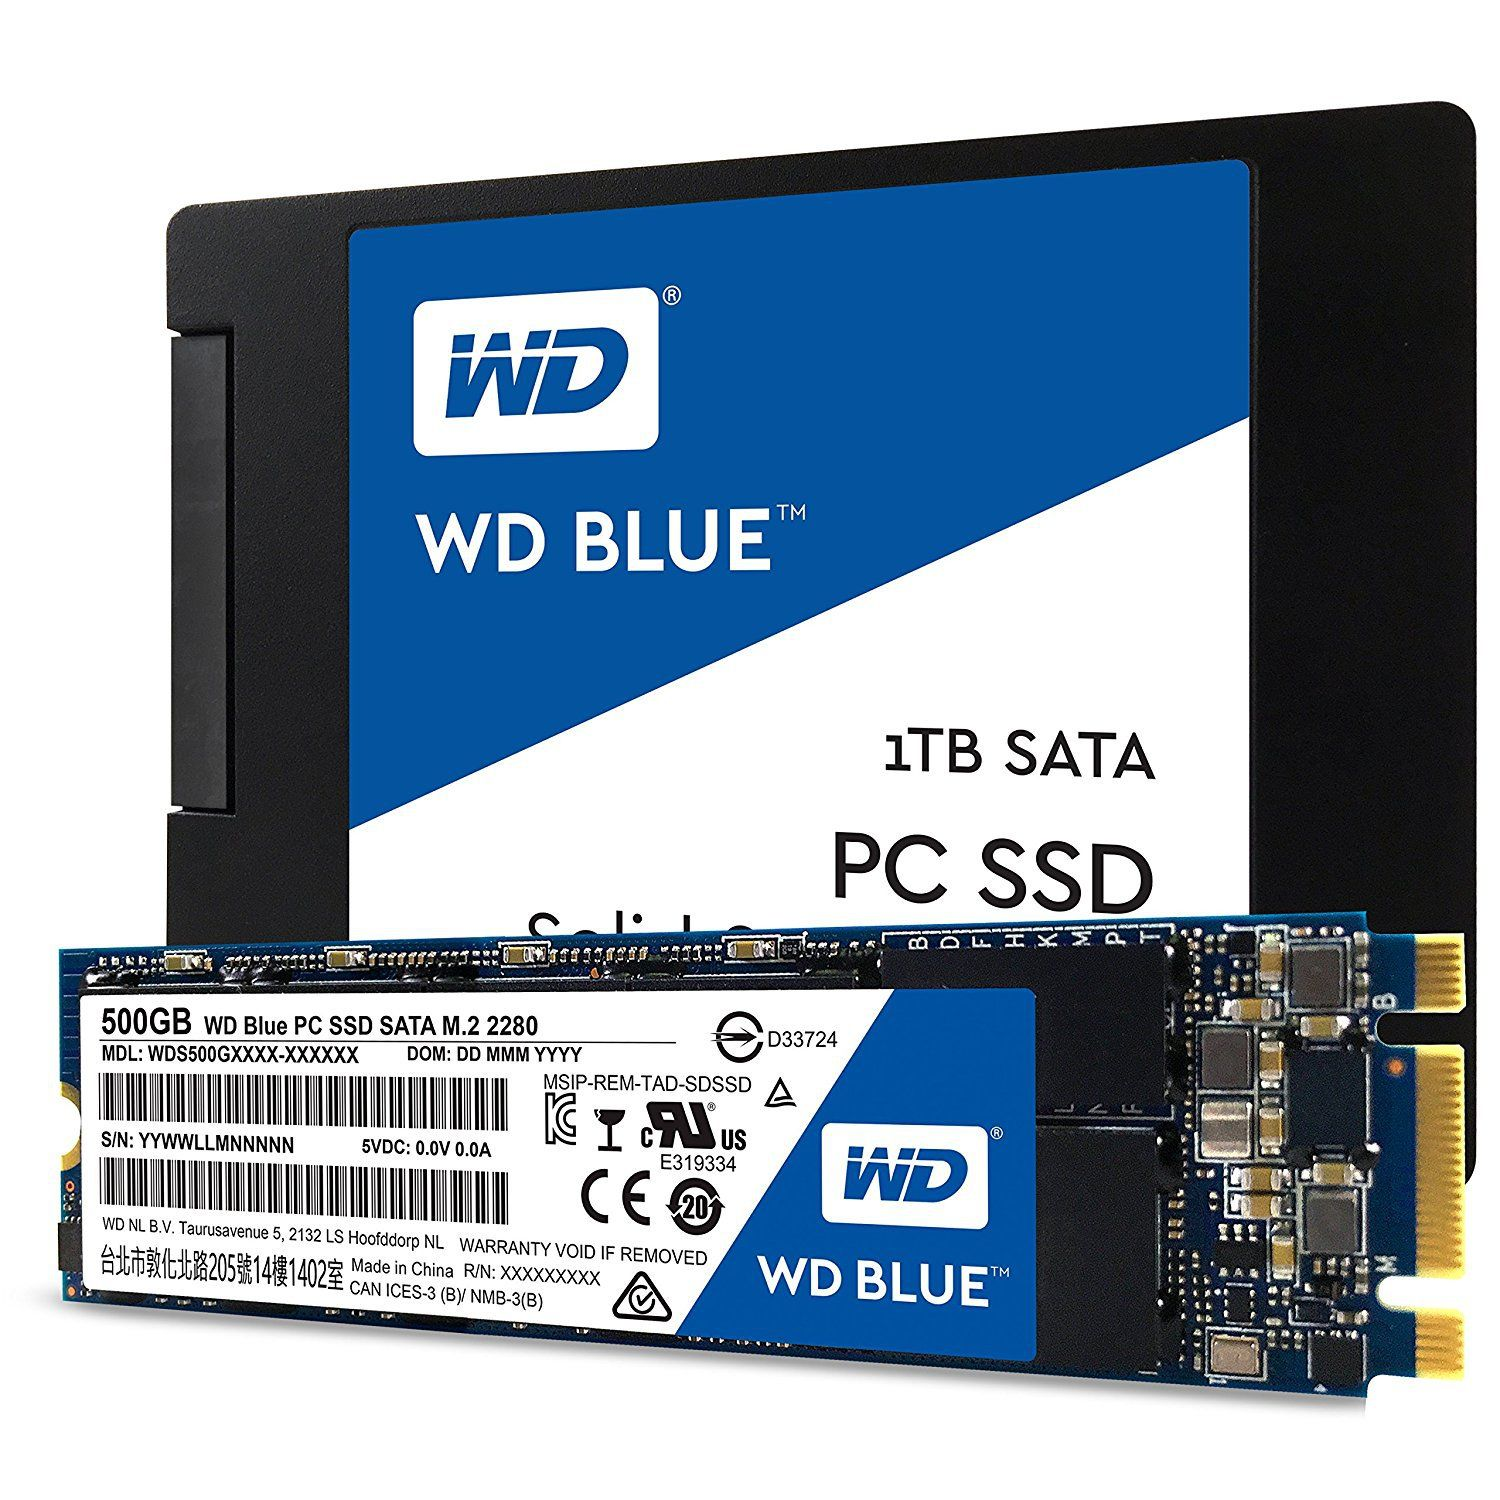 Ssd Vs Hdd Ssd Driving Product Launch